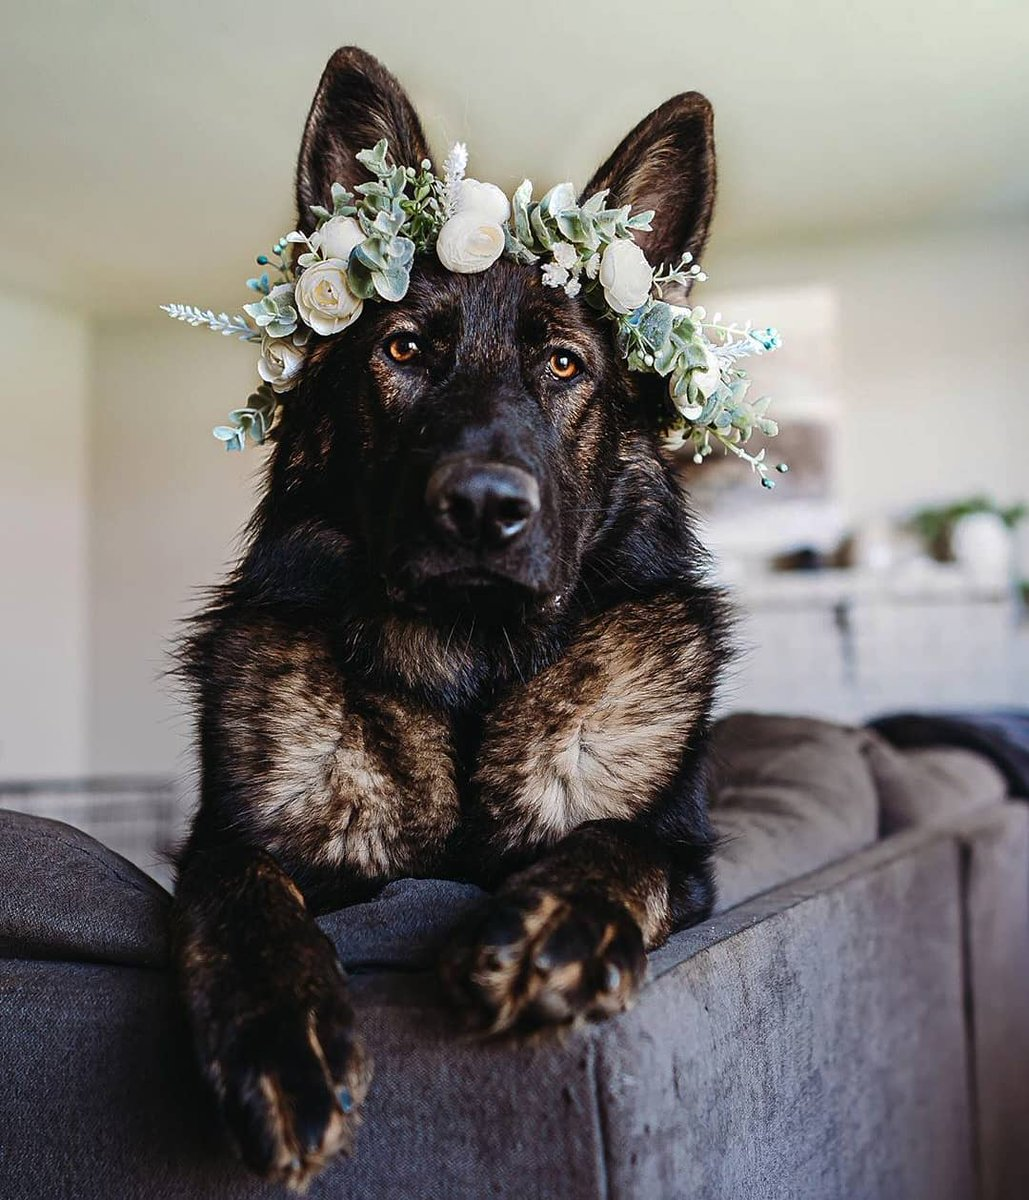 😍😍😍😍😍😍😍😍😍😍😍😍  #gsd #germanshepherd #gsdofinstagram #dogsofinstagram #dog #puppyeyes https://t.co/A16Pv5FG0U